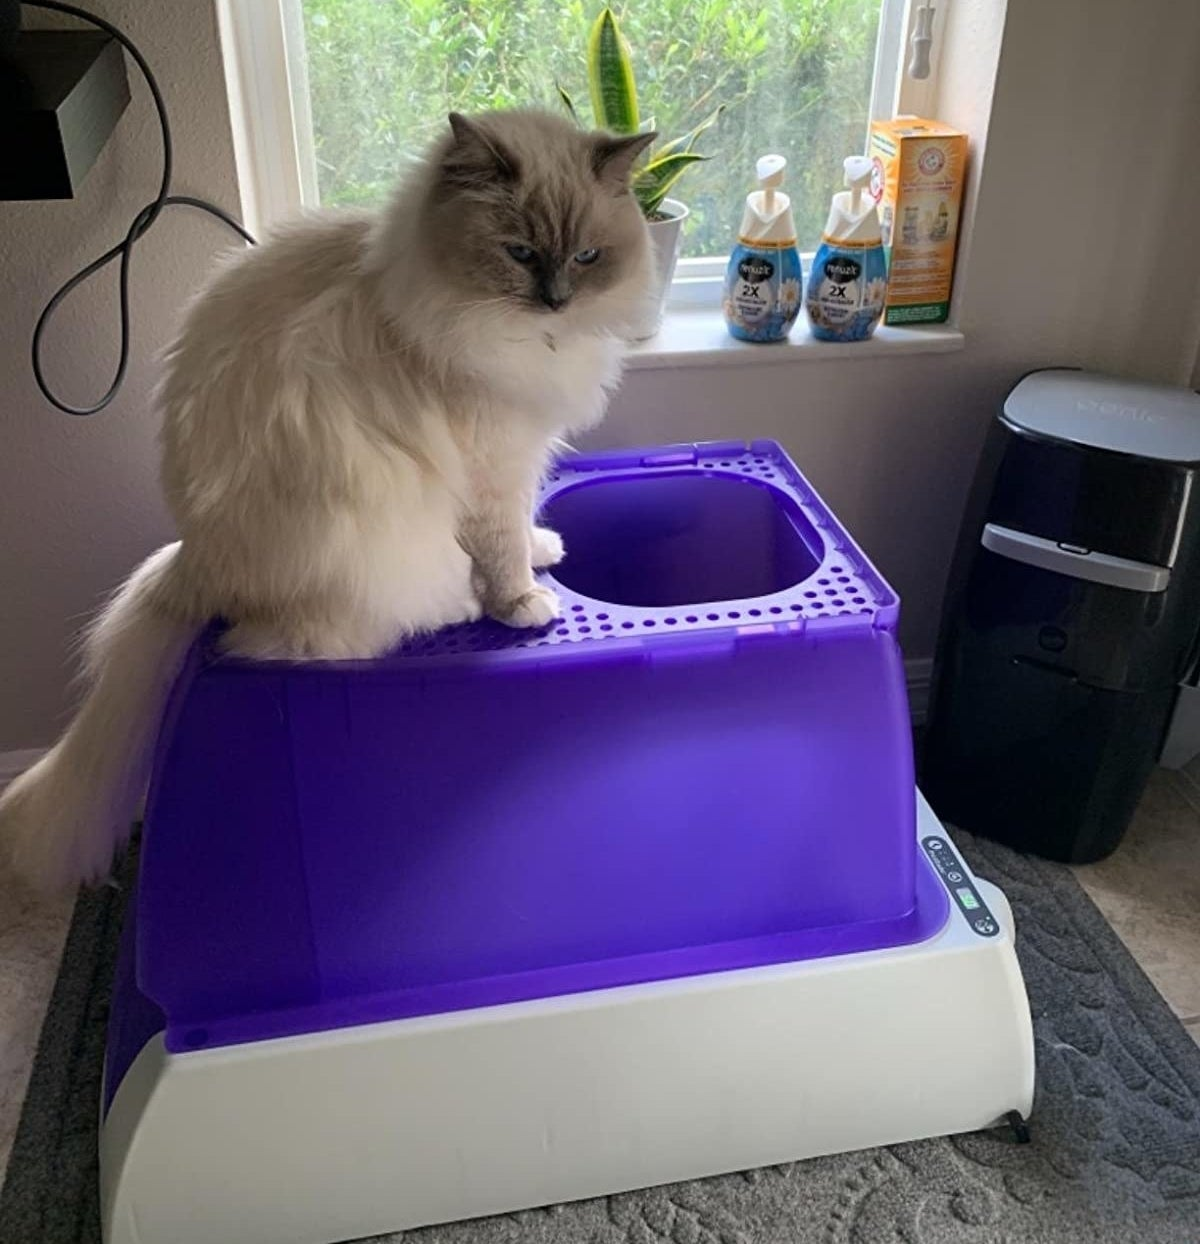 reviewer photo showing their cat sitting on top of the purple litter box